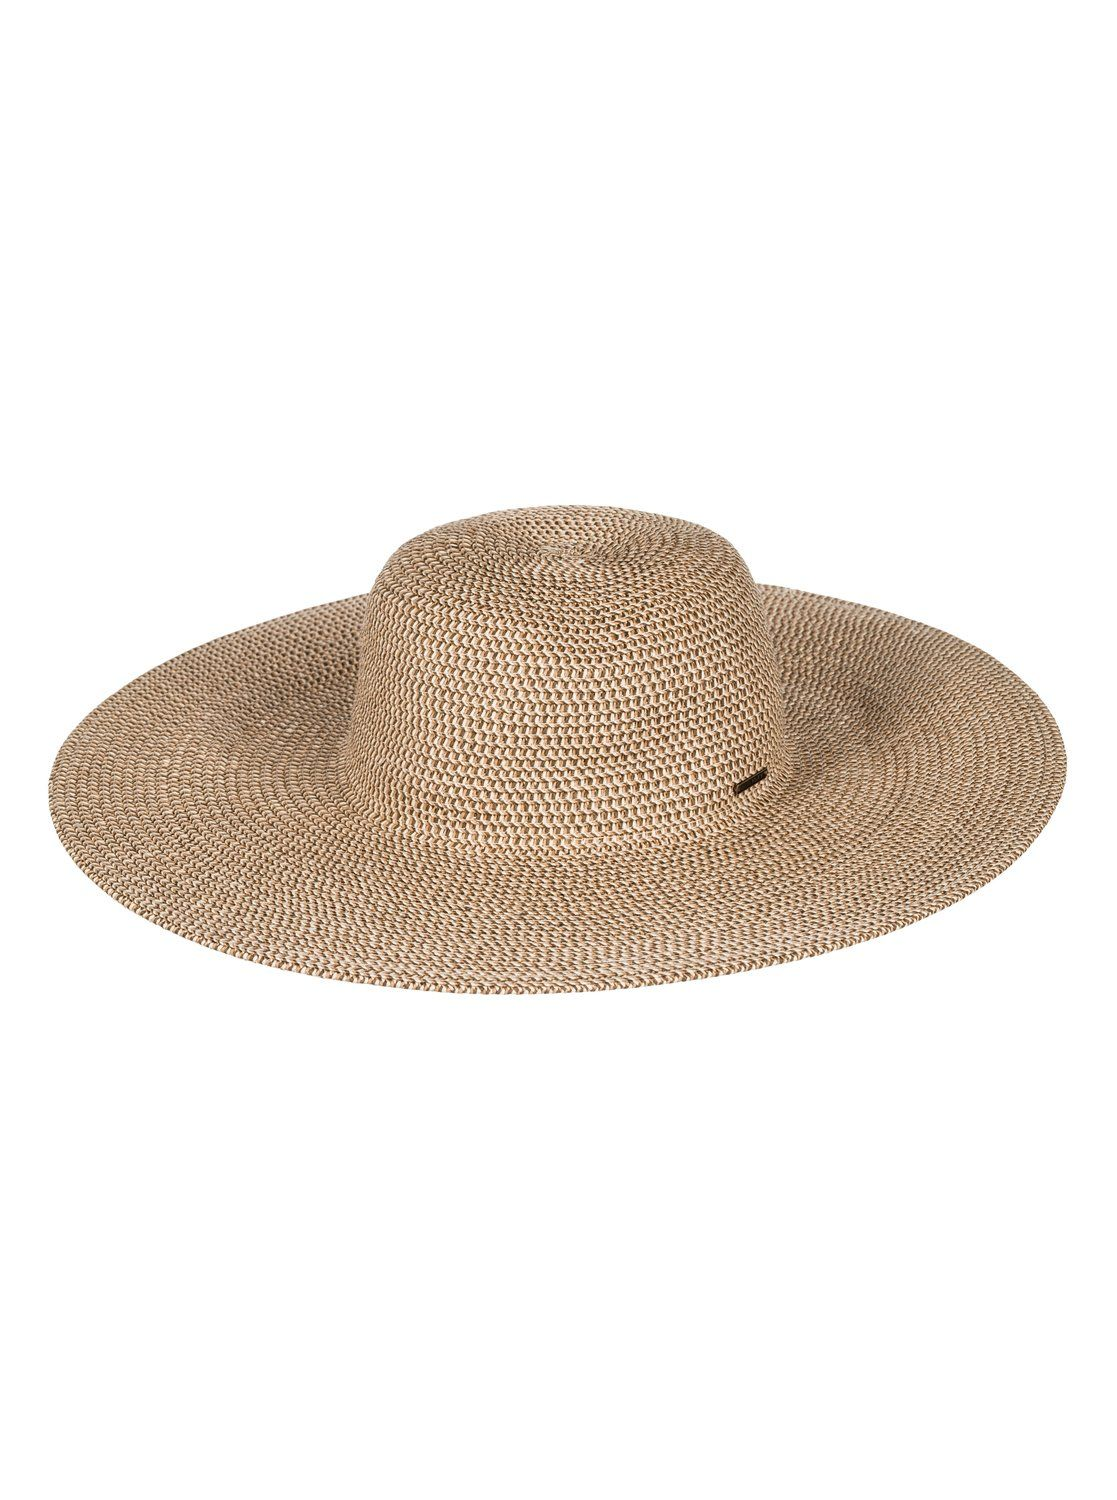 943f8f4932c Ocean Dream Straw Sun Hat